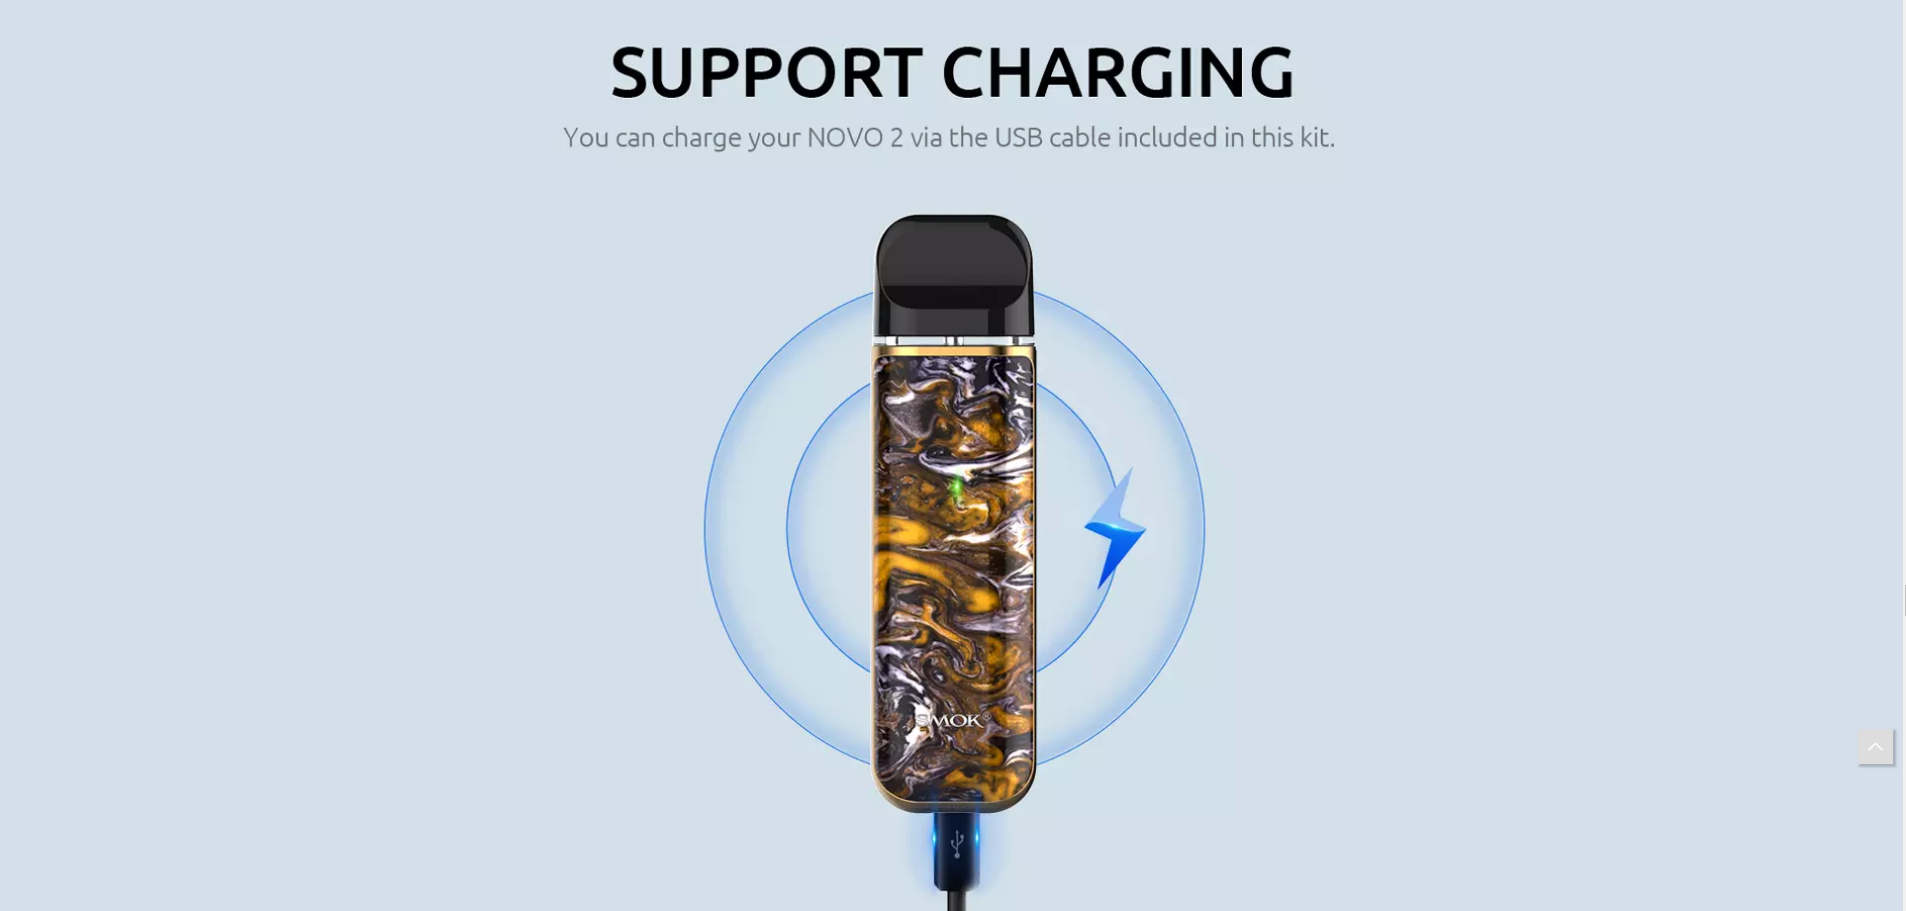 novo support charging